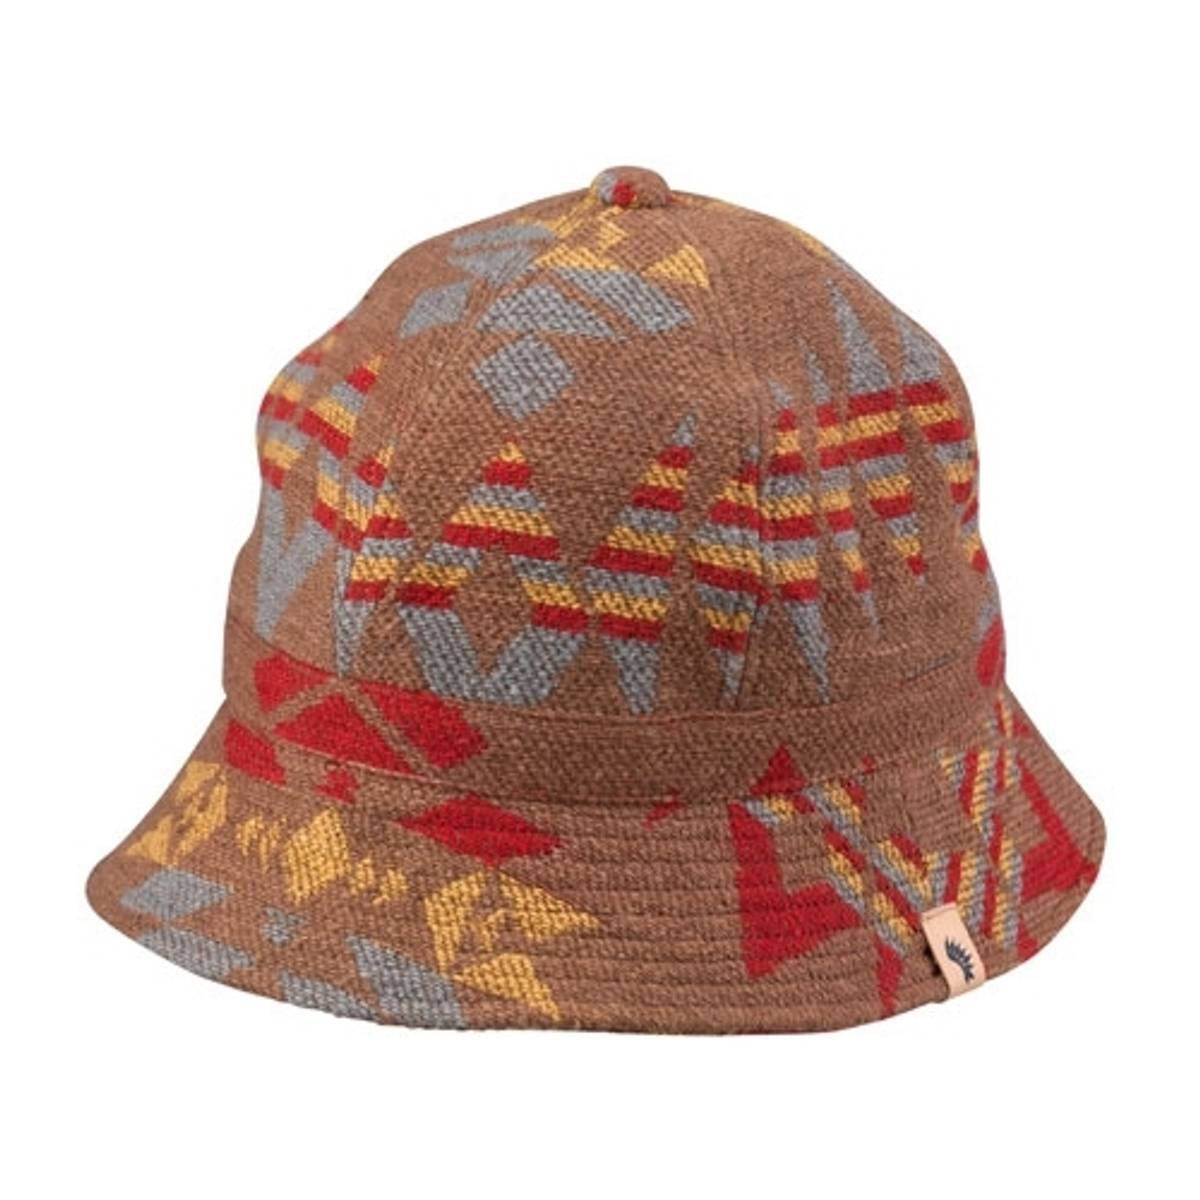 288cb2a7aa1 Visvim Native Blanket Bucket Hat ND Size one size - Hats for Sale - Grailed